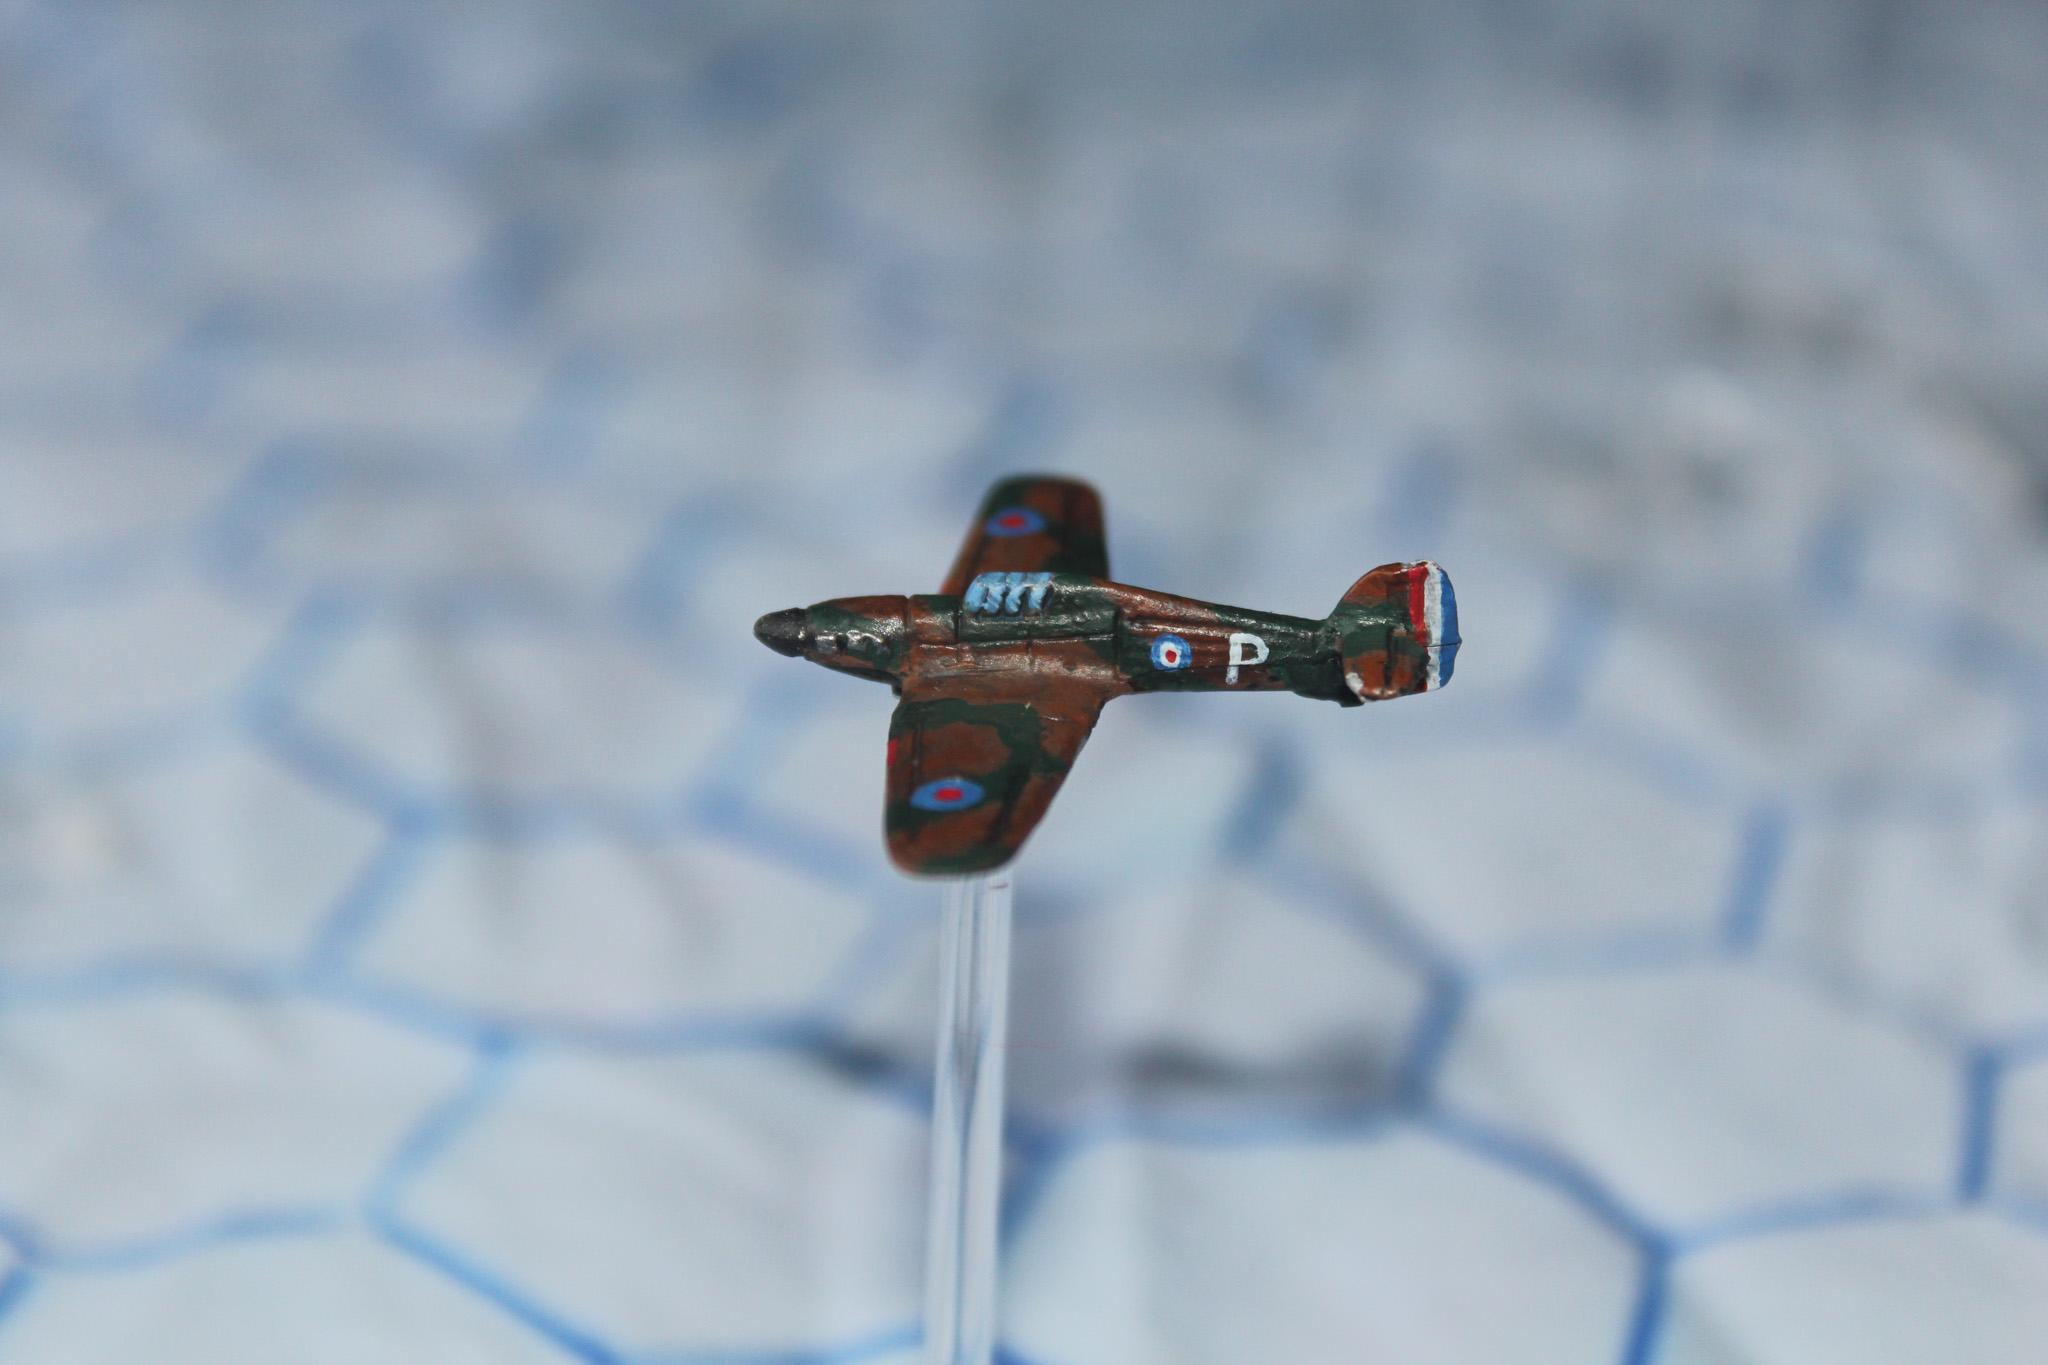 1:300, 6mm, Airborne, Aircraft, Airplane, Aviation, Check Your 6!, Fliers, Planes, World War 2